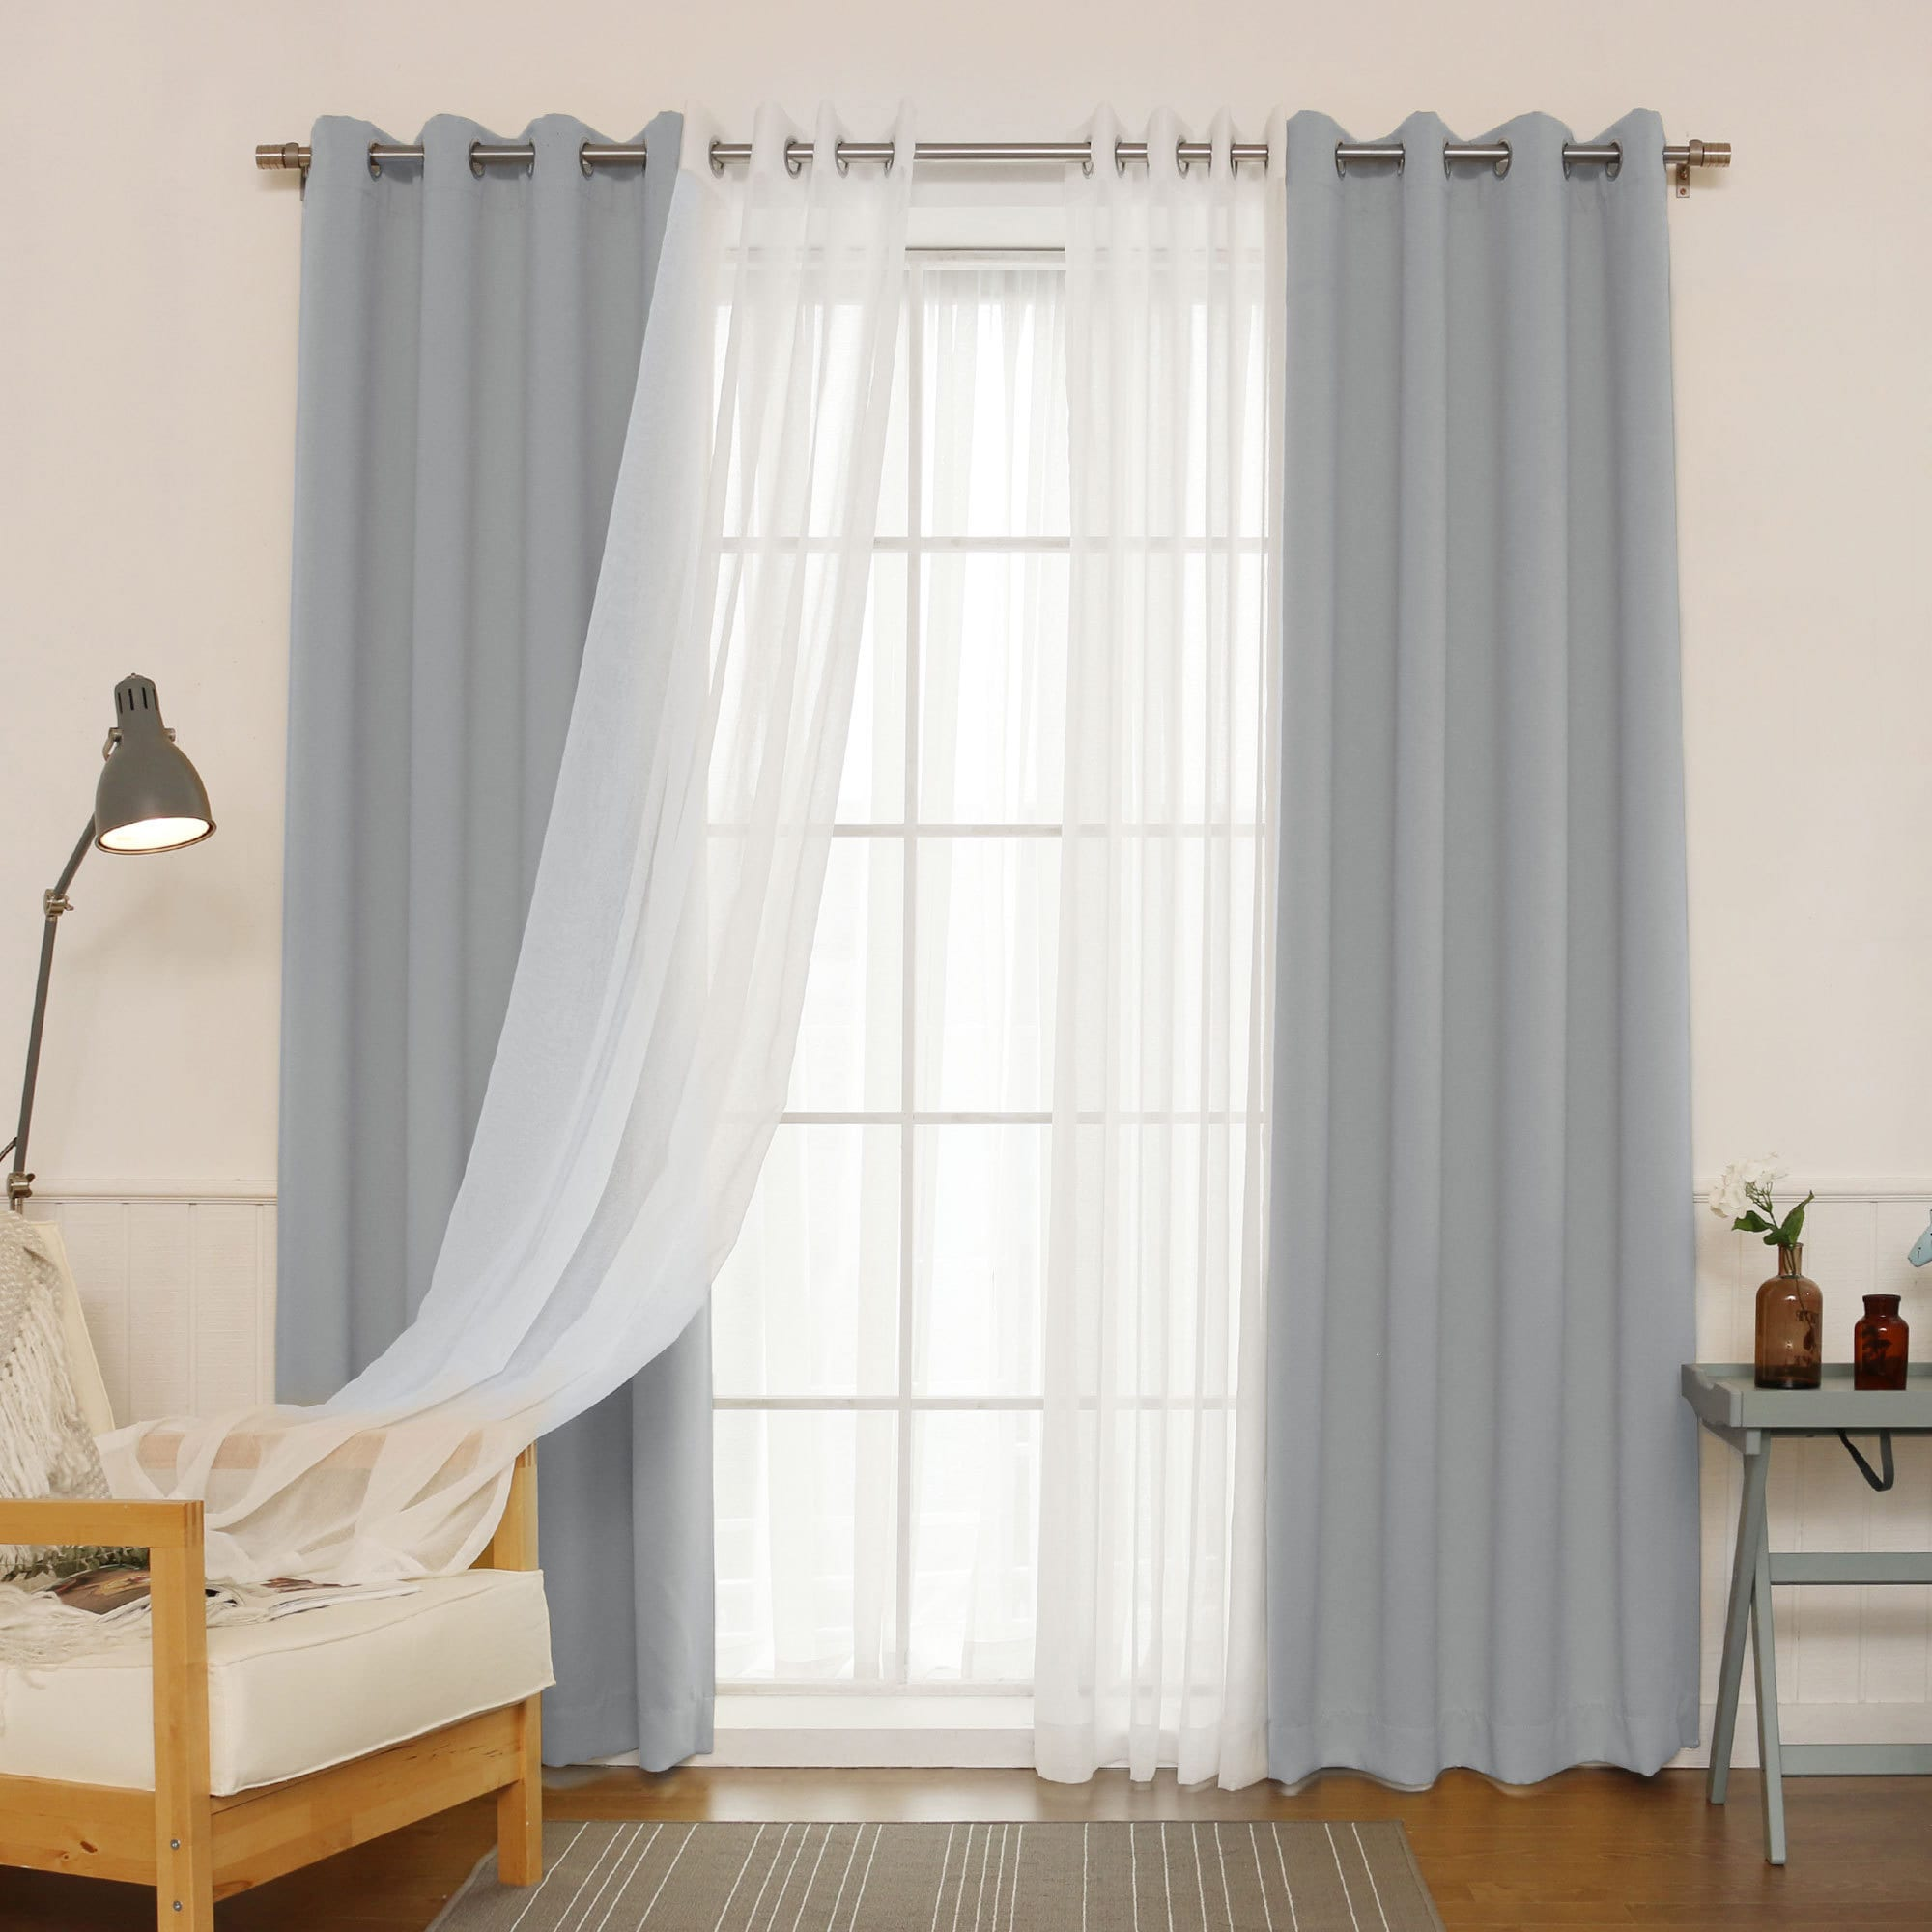 w silver p of pearl full half set dahlia curtains valance picture swag inch overlapping